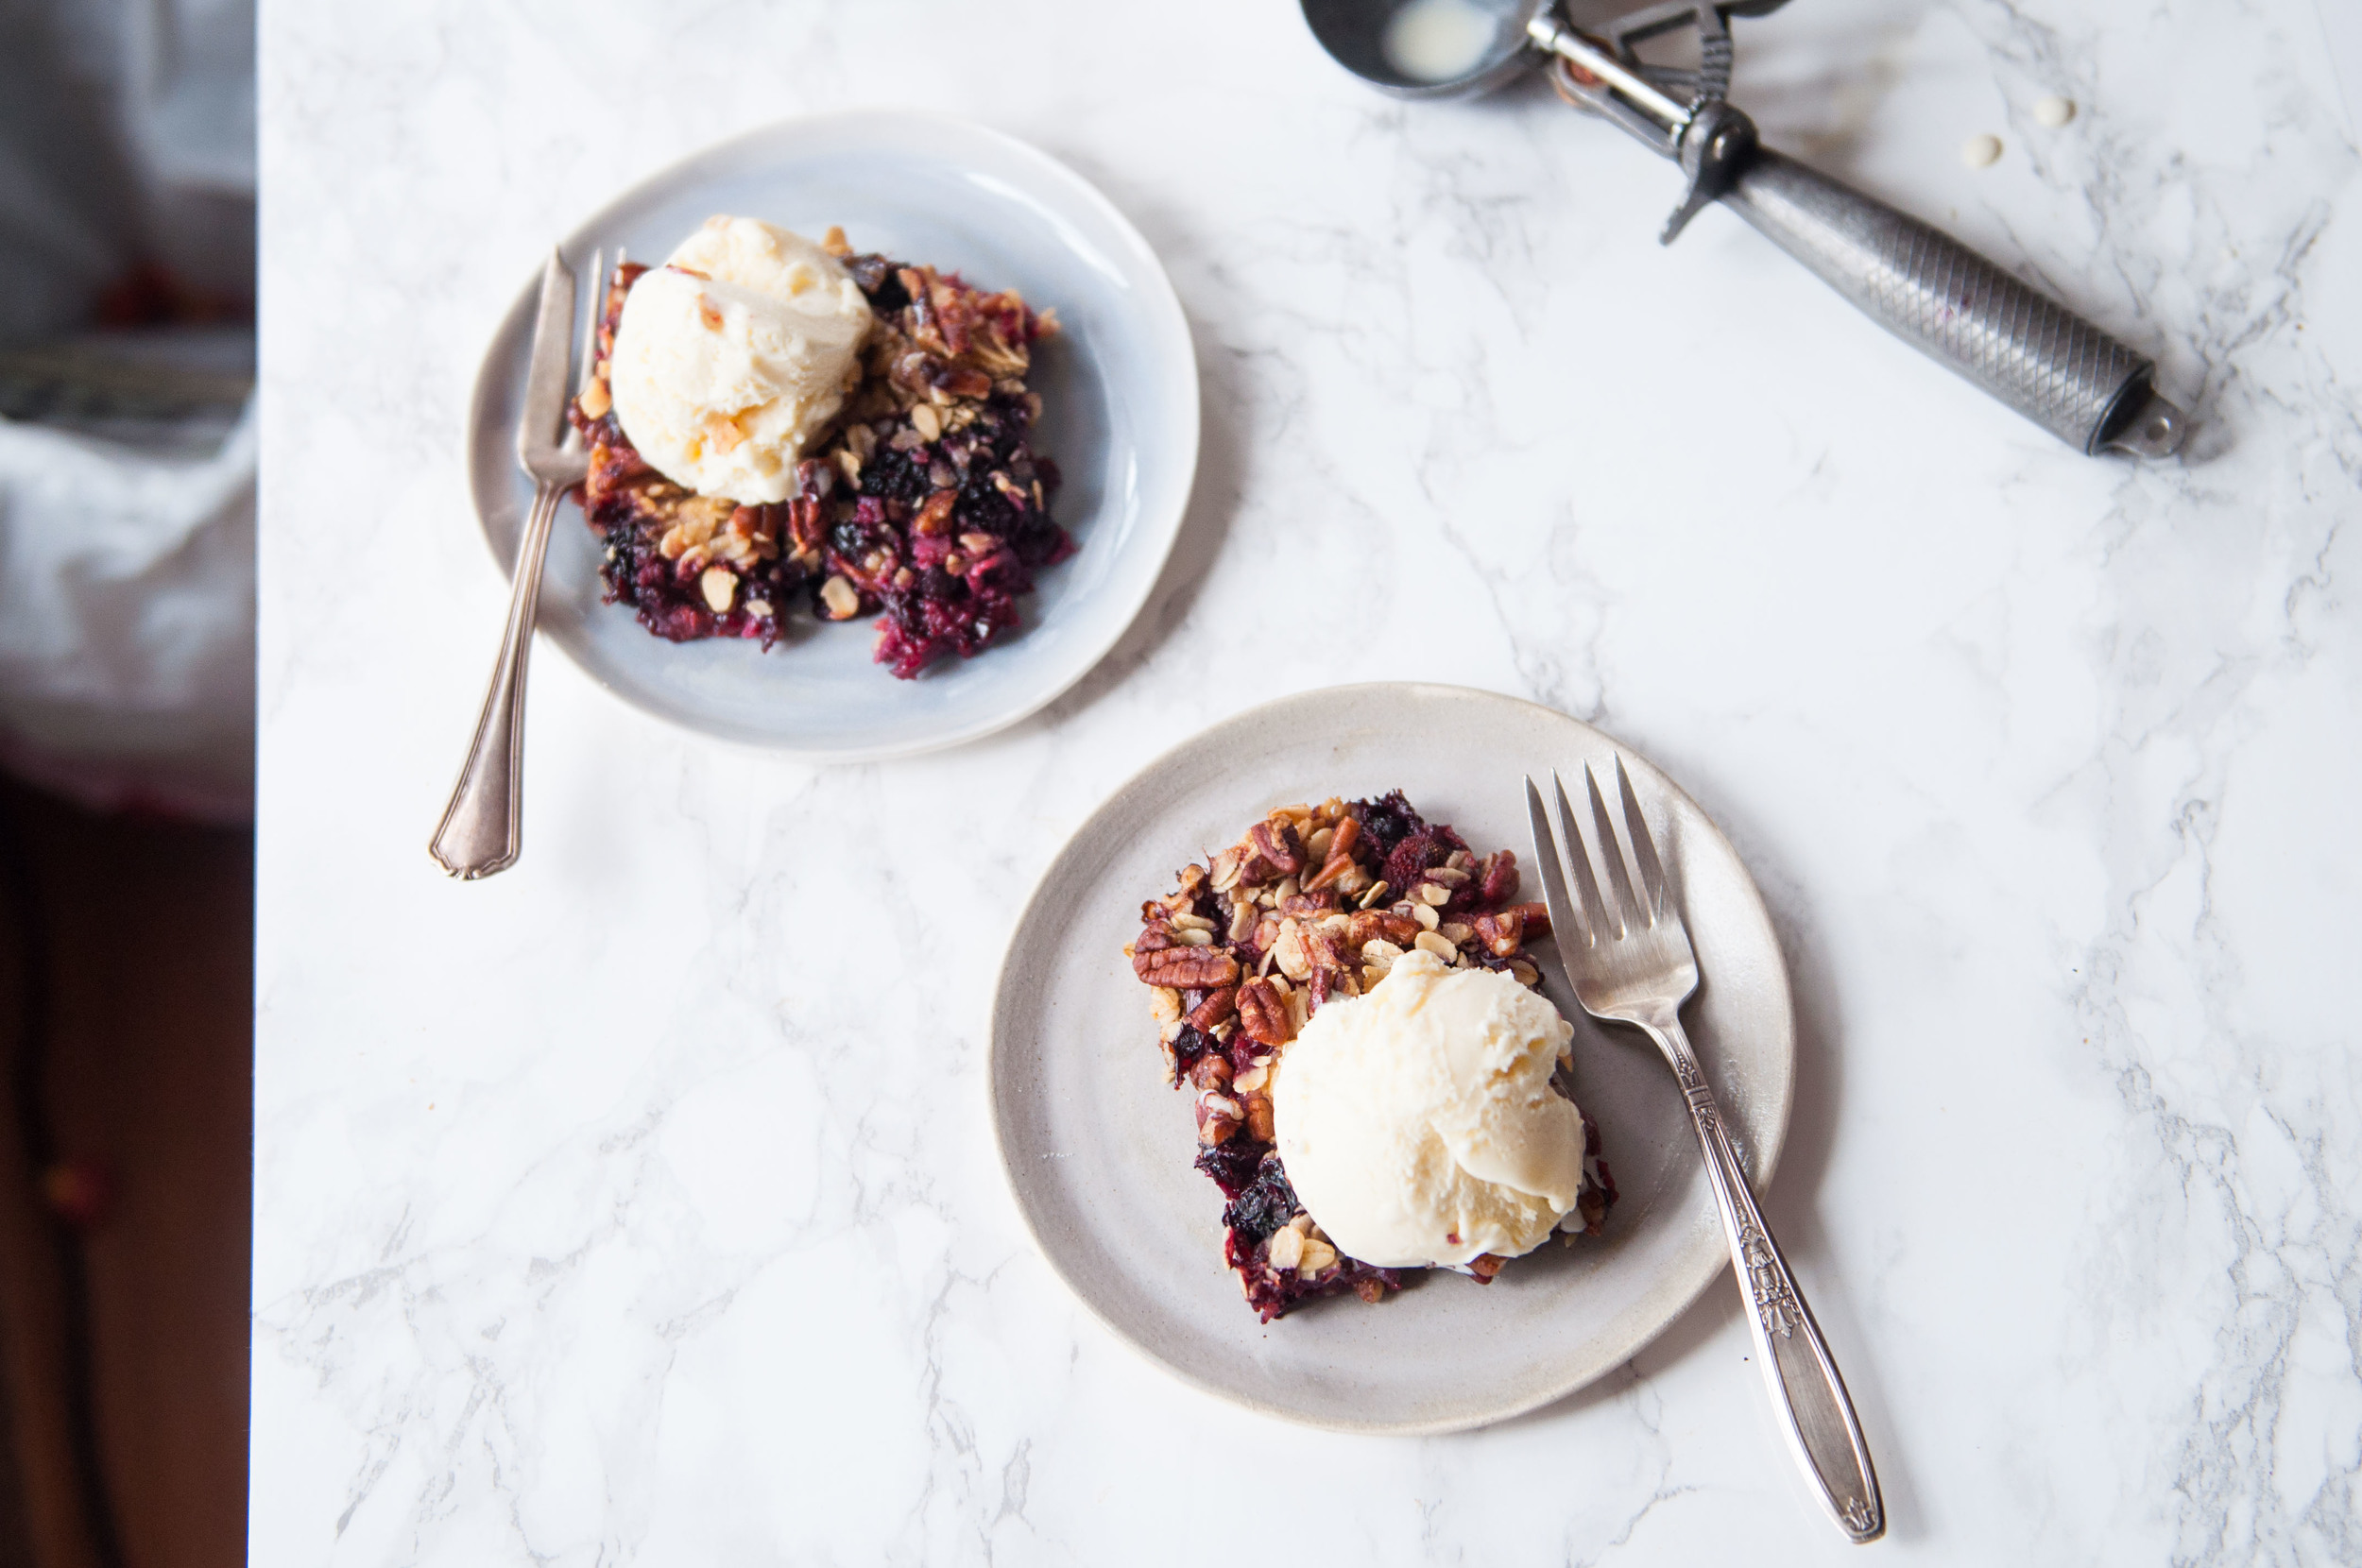 Mixed Berry Crumble with an Oat and Pecan Topping. Sweetened with honey.